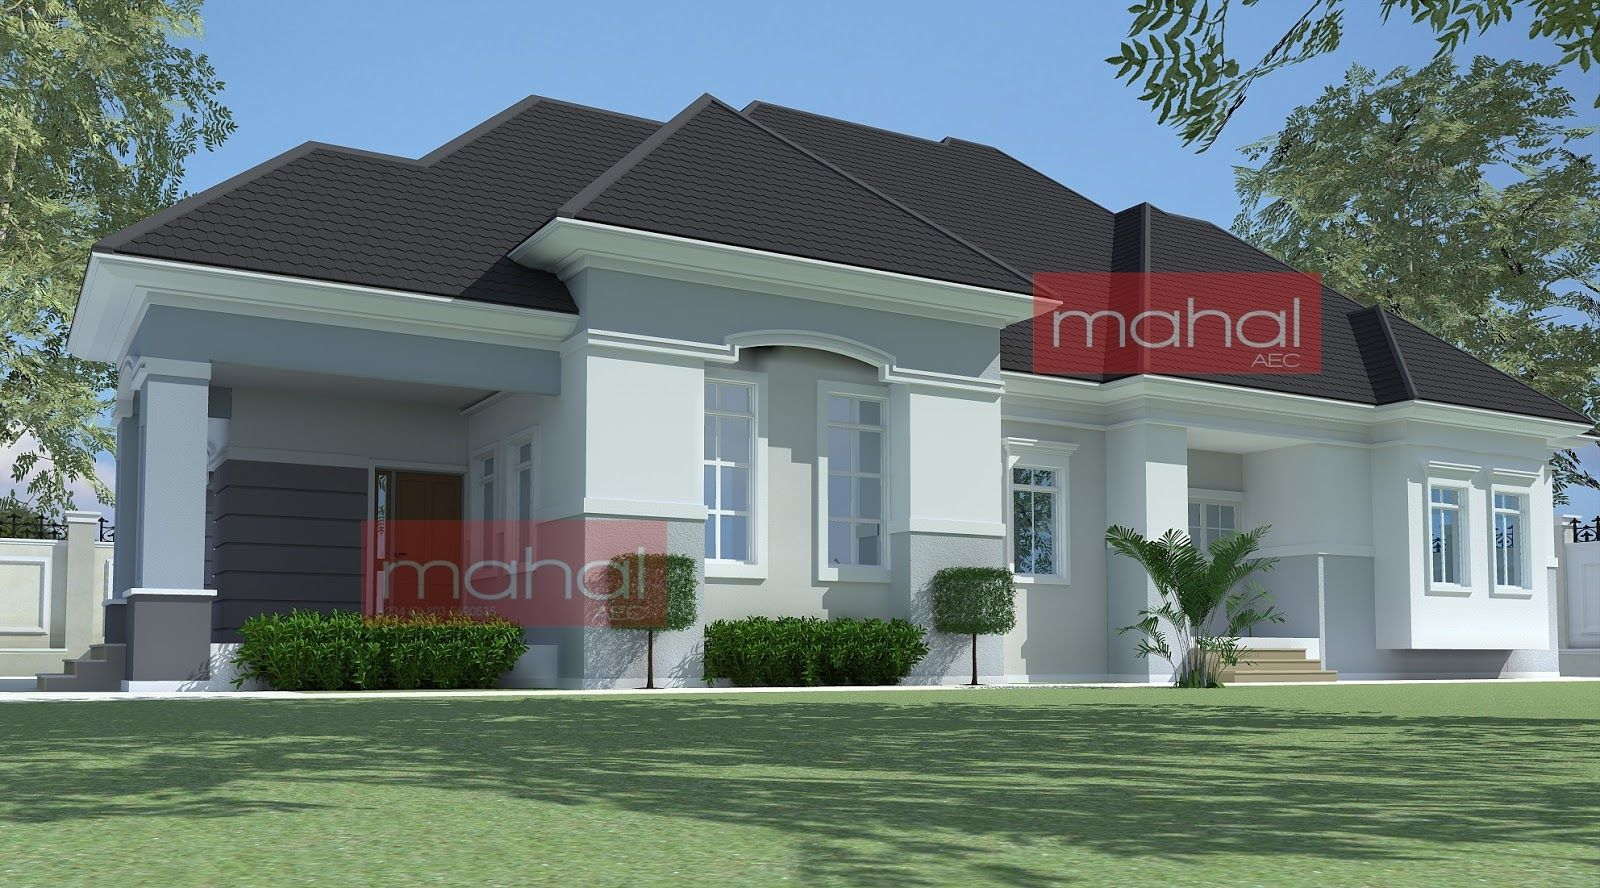 4 bedroom bungalow plan in nigeria 4 bedroom bungalow for Bungalow home decor